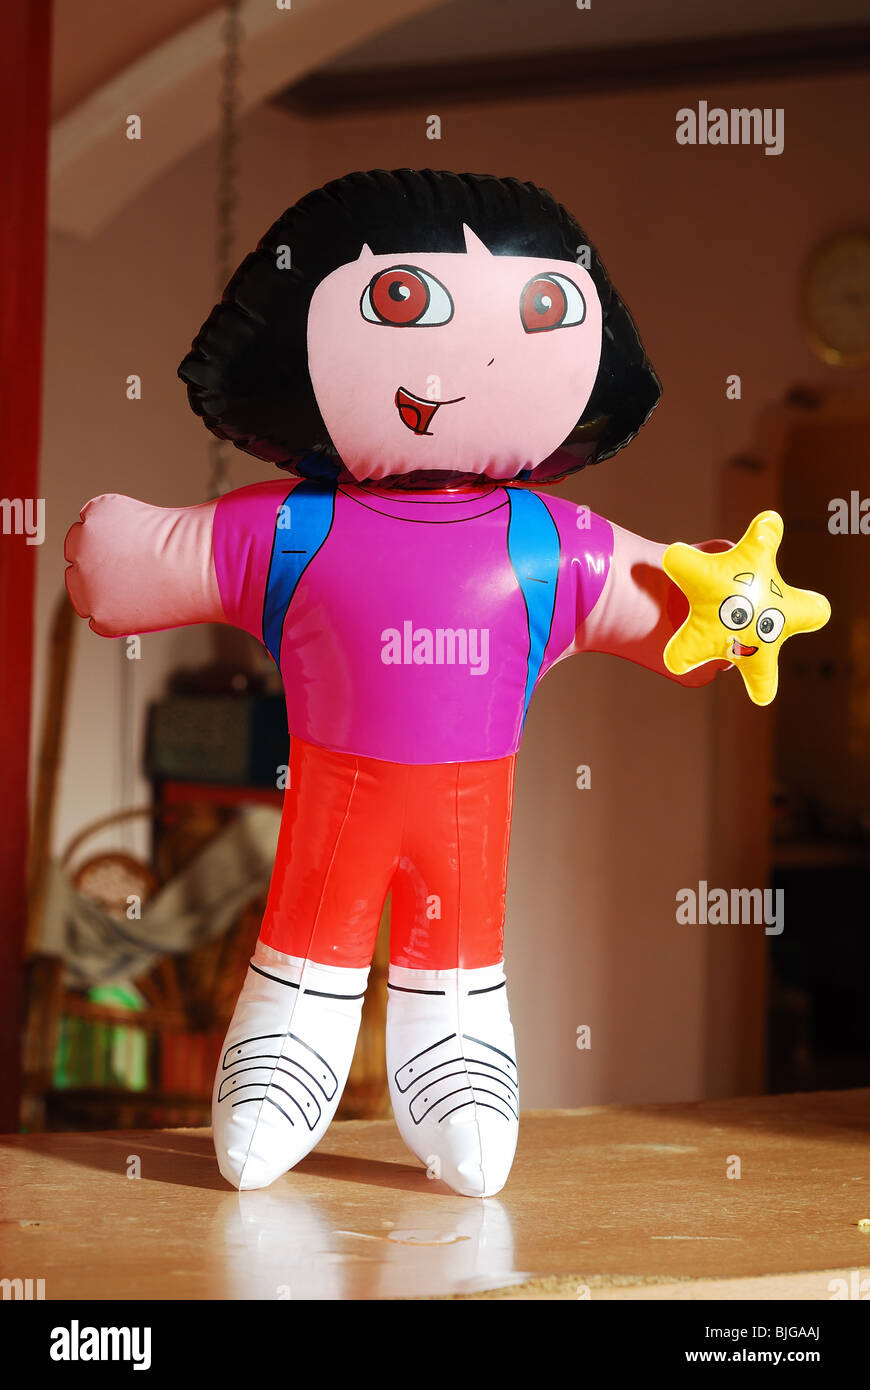 Dora doll with beautiful blurred background - Stock Image